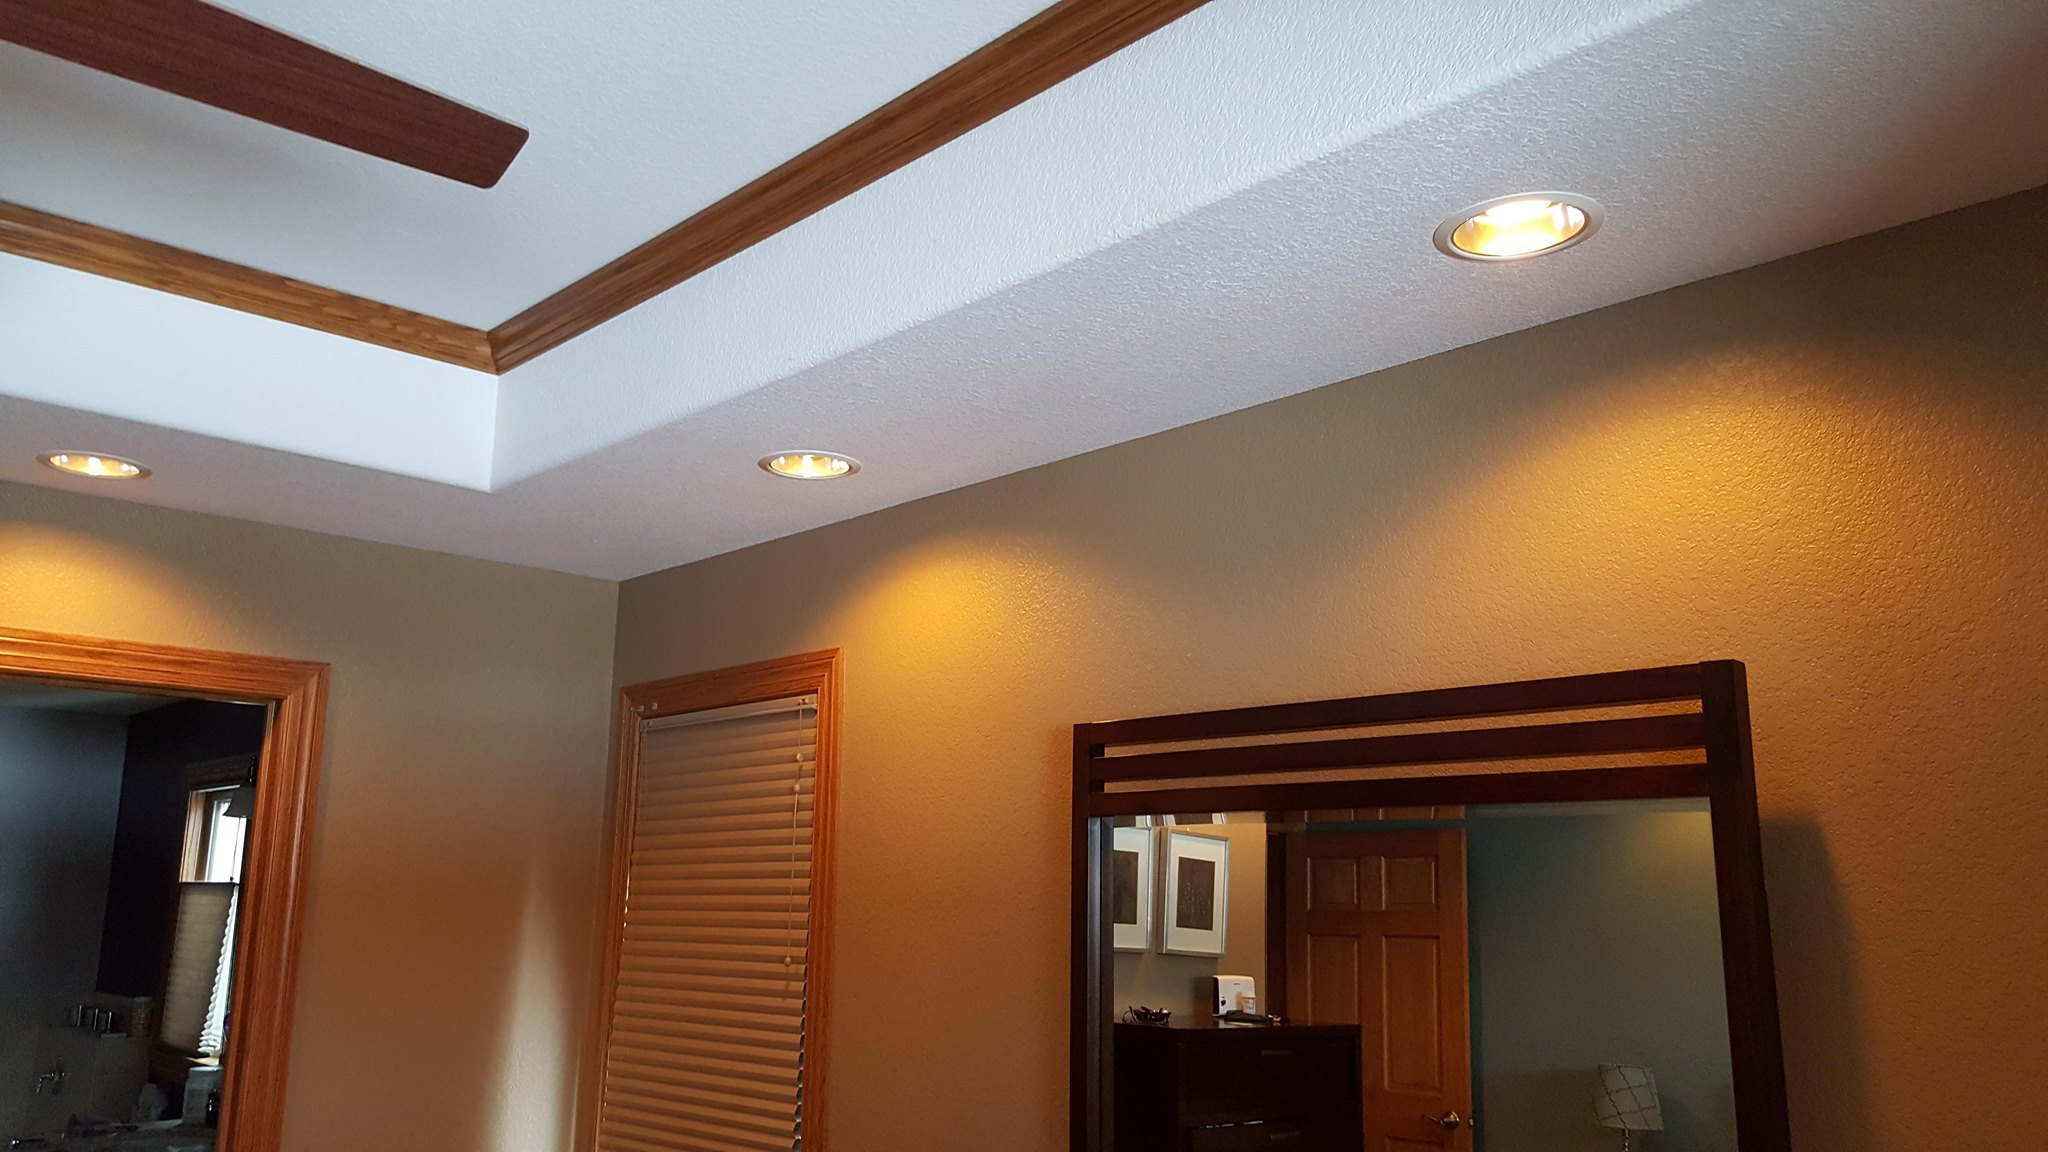 Led upgrade - 520 watts of power to only 76 watts. LED lamps are a warm dim that we provide. Very nice